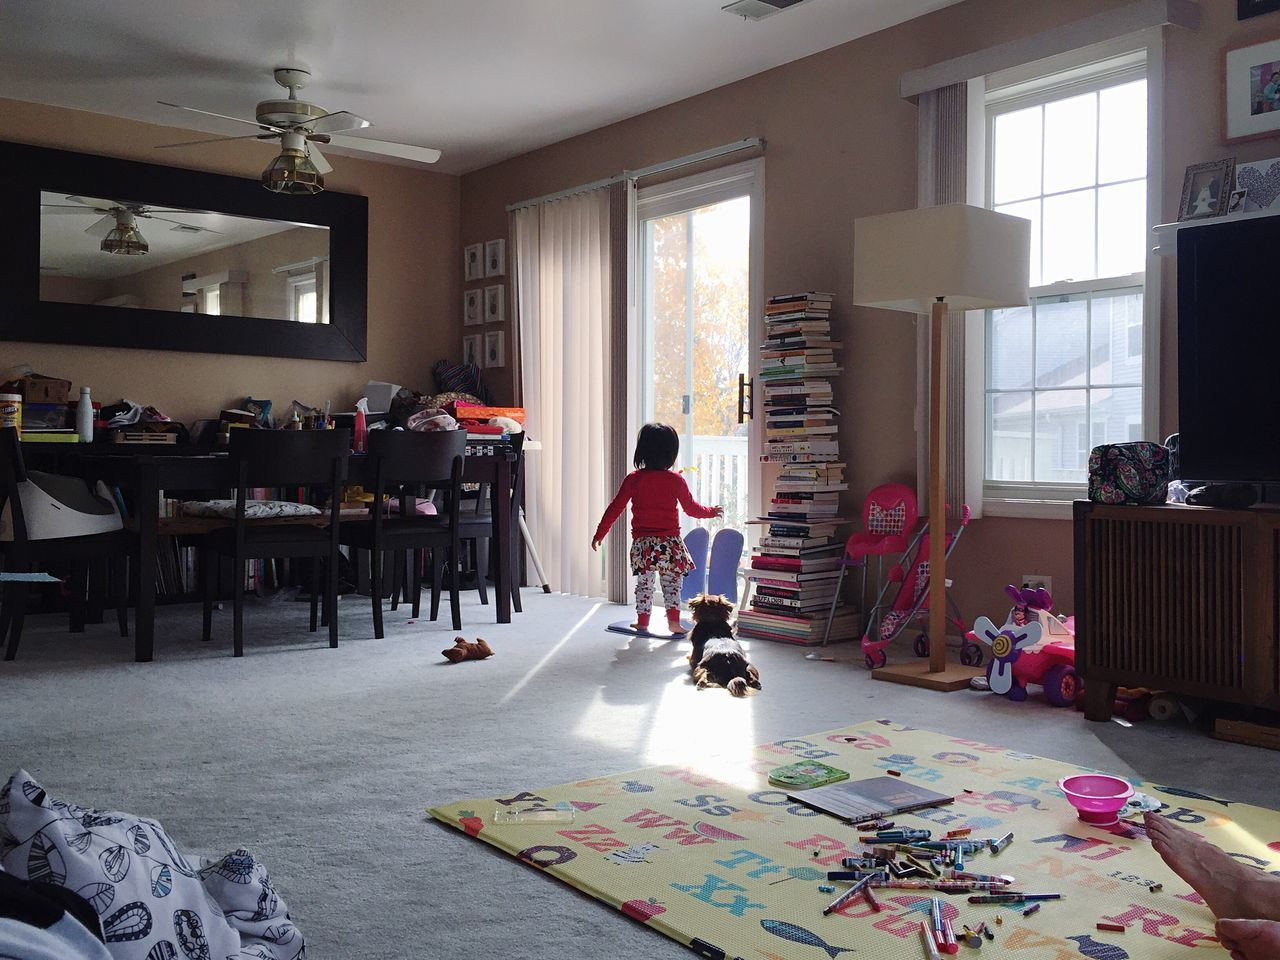 Living Room Indoors  Domestic Life Lifestyles Full Length Standing Home Interior Toddler  Toddlerlife Peaceful Insidelookingout Playing People Day